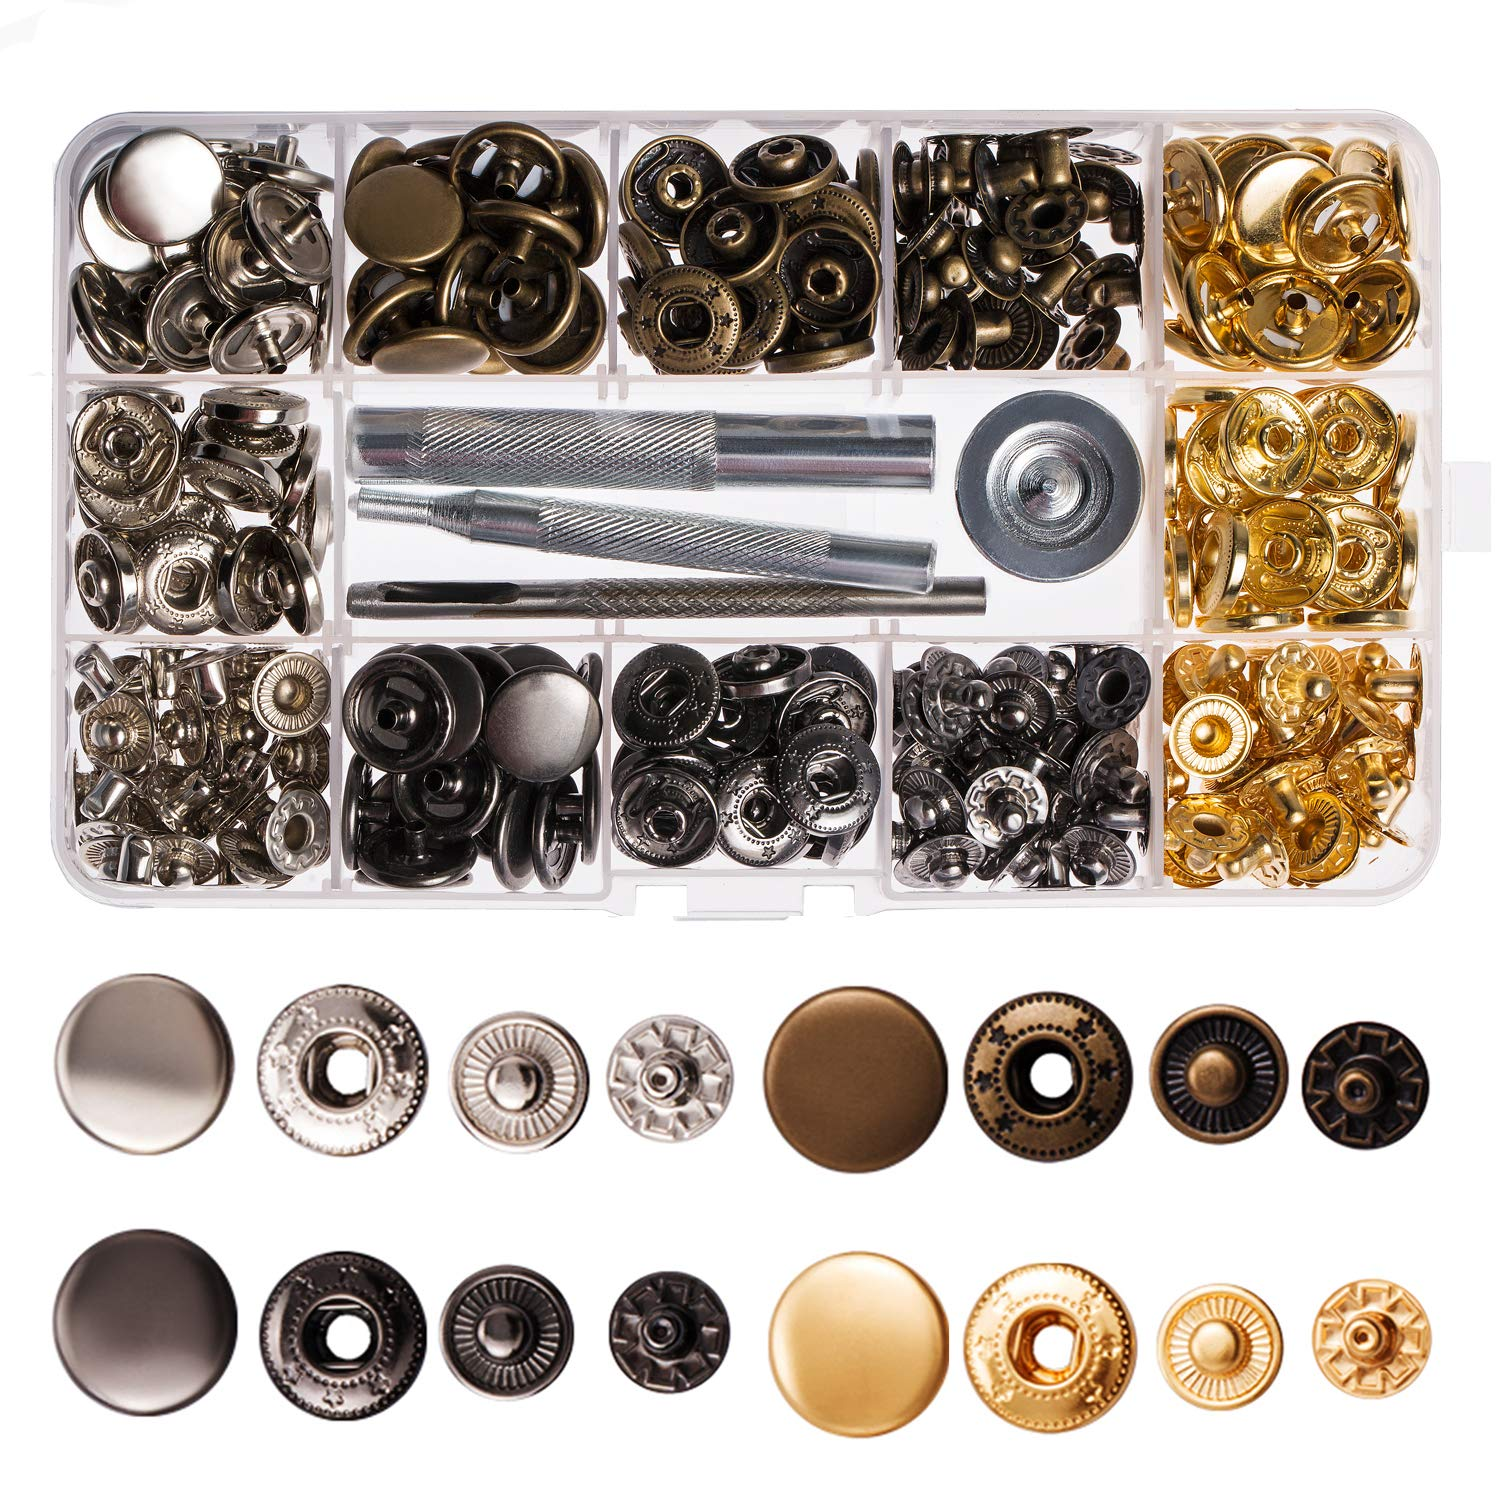 Lynda 80 Sets Metal Snap Button, 4 Colors Snap Fasteners with 4 Pieces Fixing Tools,Used in Leather Craft, DIY Craft, Overalls, Jacket and Jeans,12.5mm in Diameter … 12.5mm in Diameter …